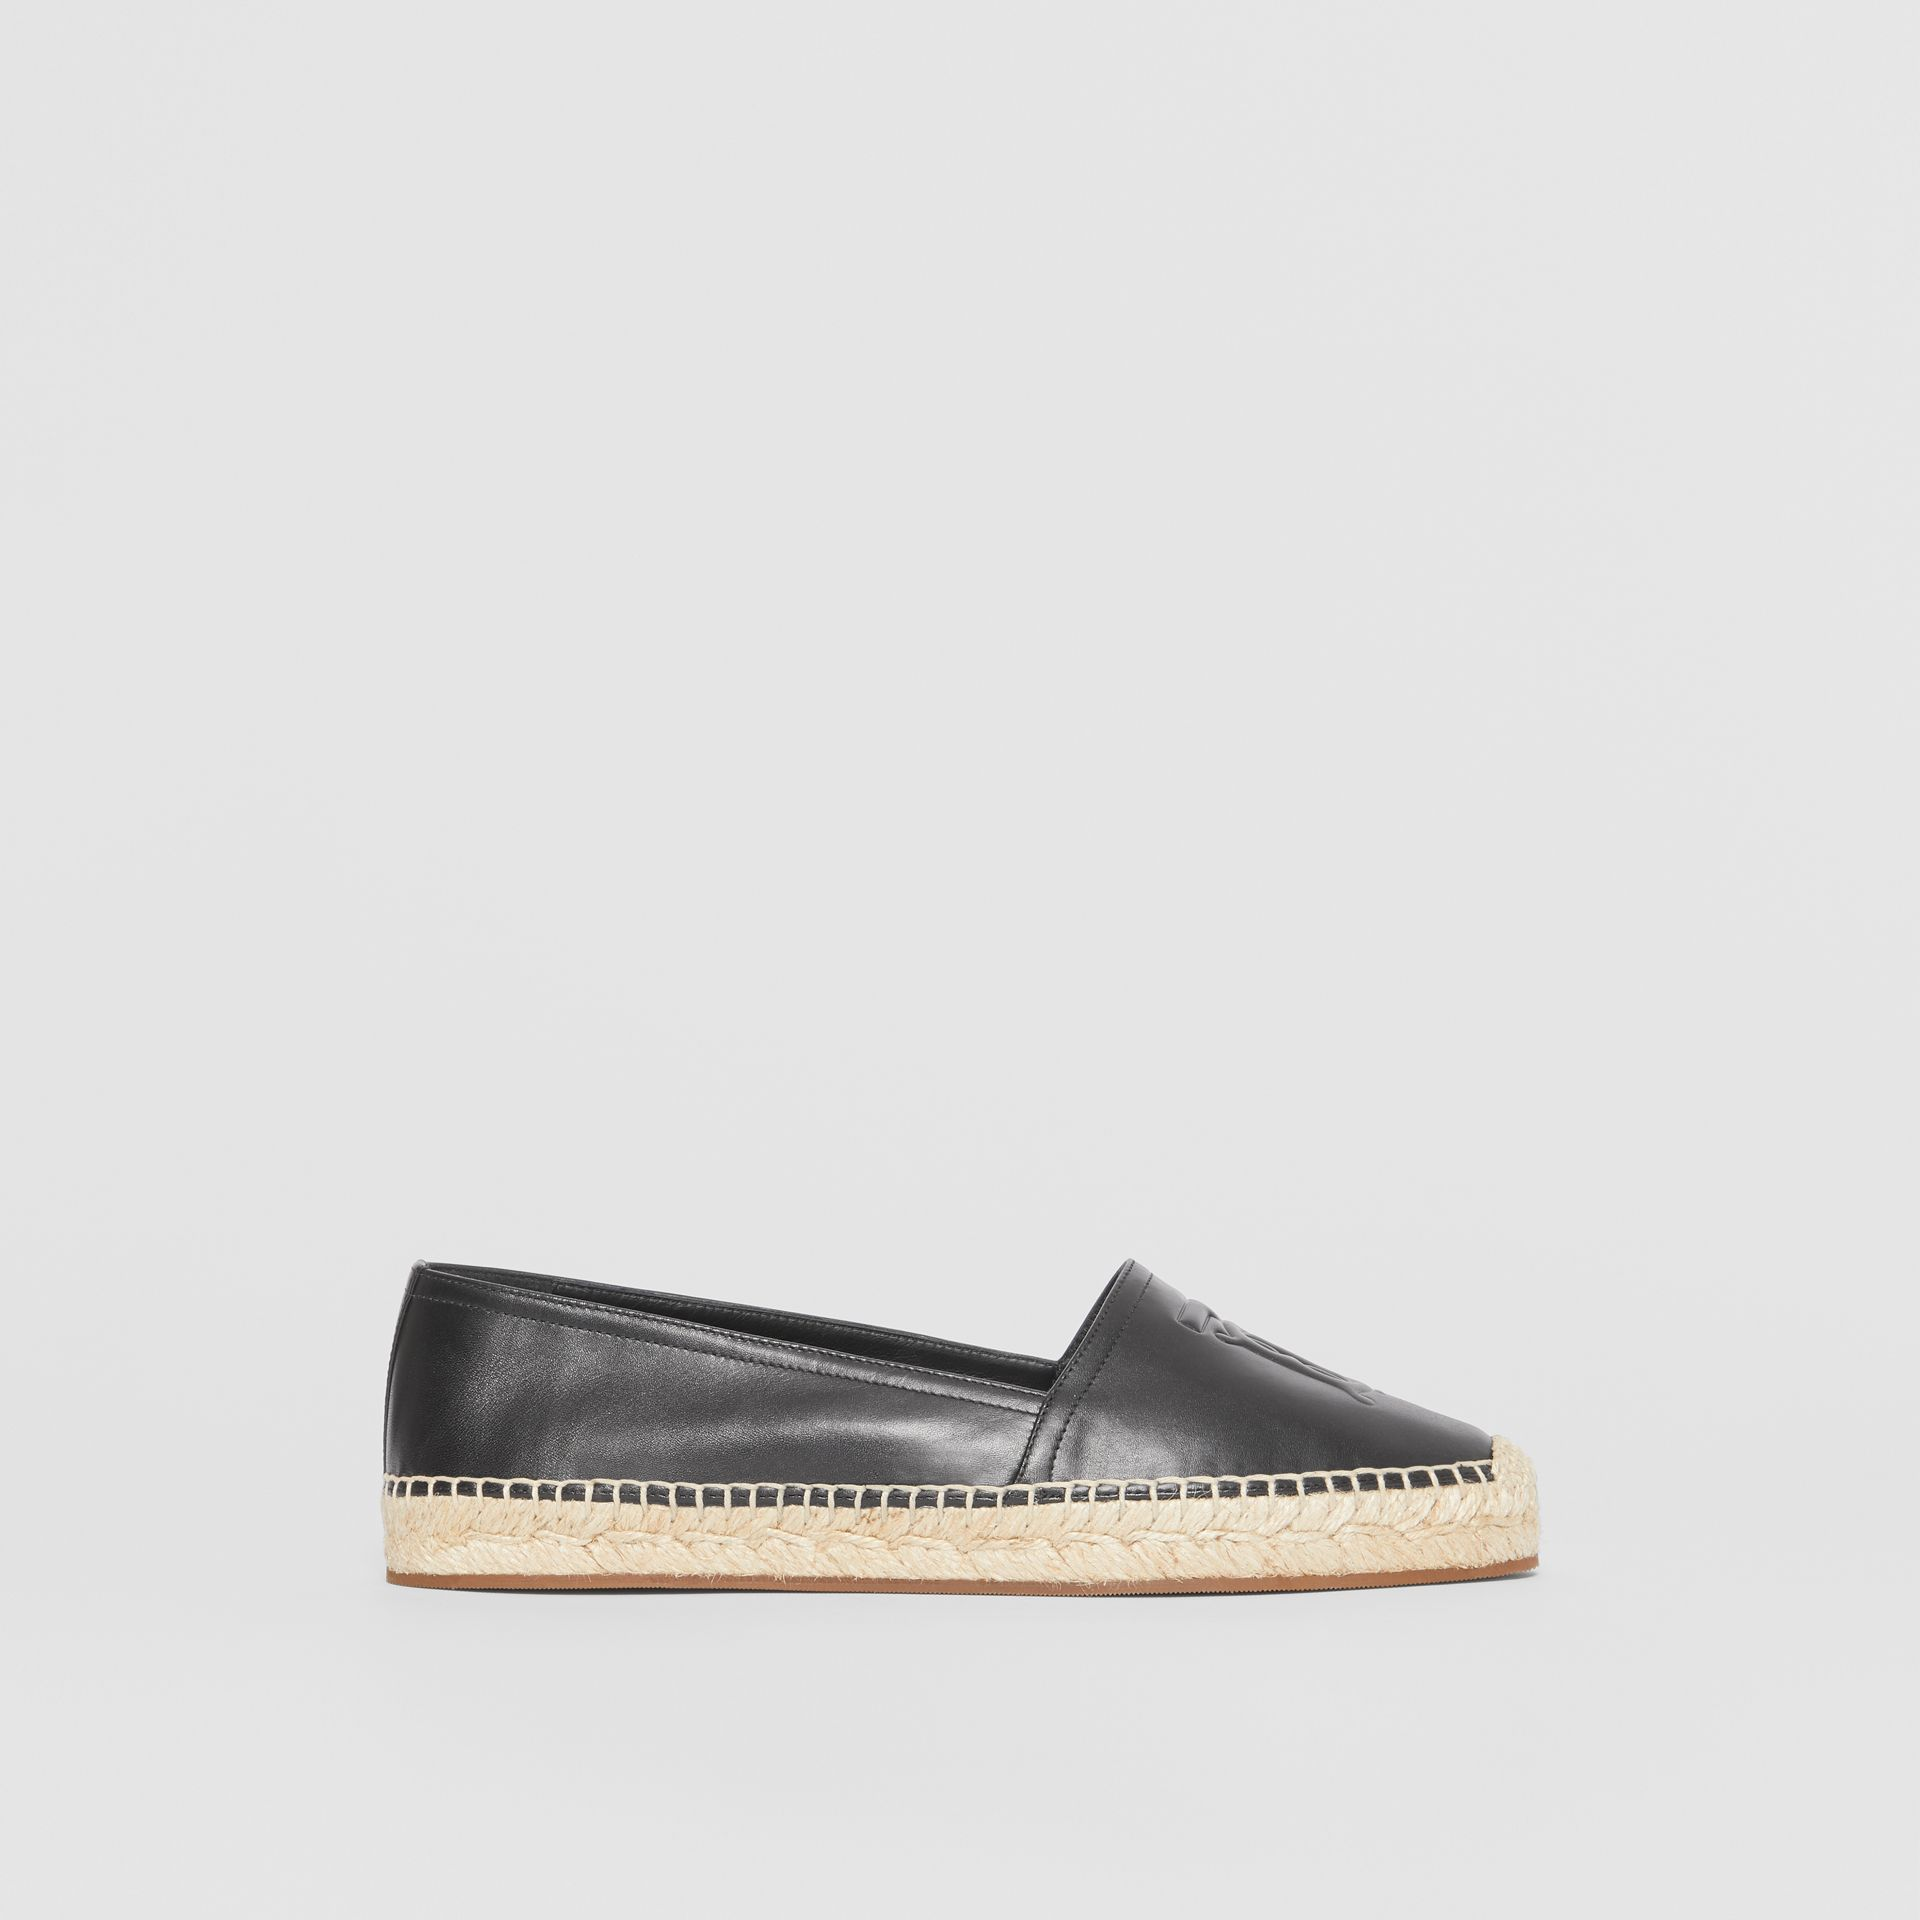 Monogram Motif Leather Espadrilles in Black - Women | Burberry United Kingdom - gallery image 5